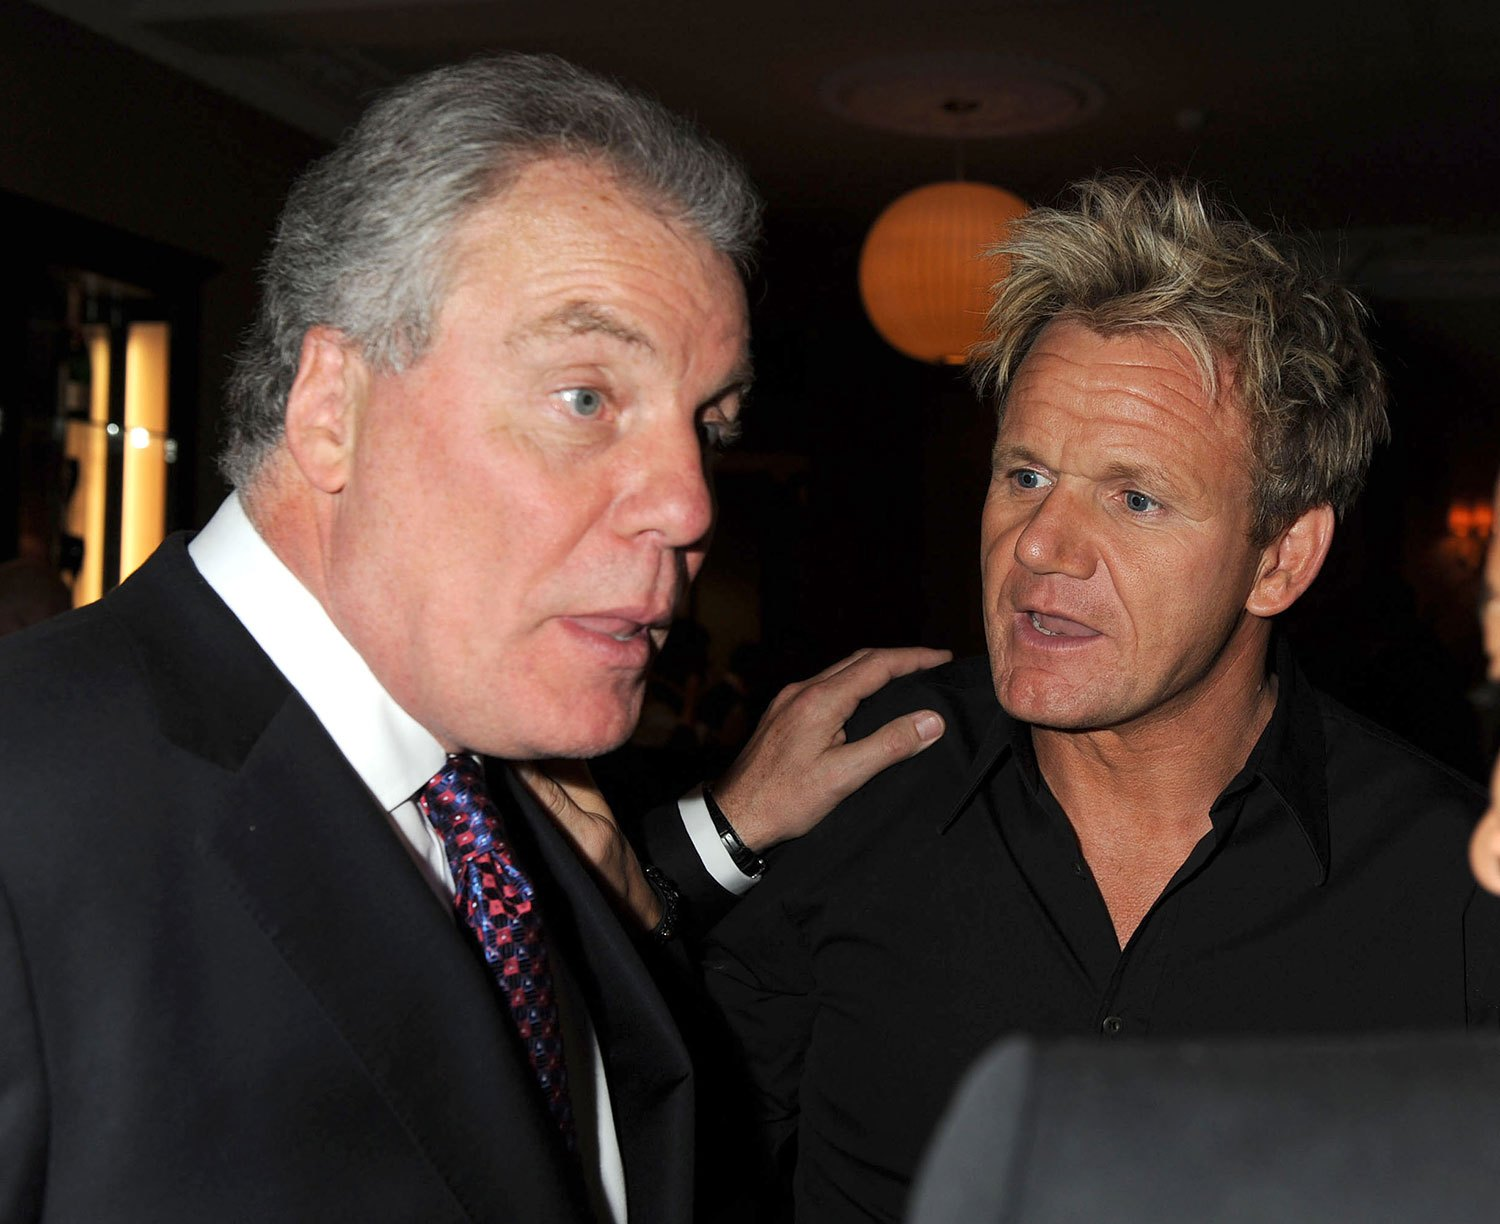 Gordon Ramsay and father in law